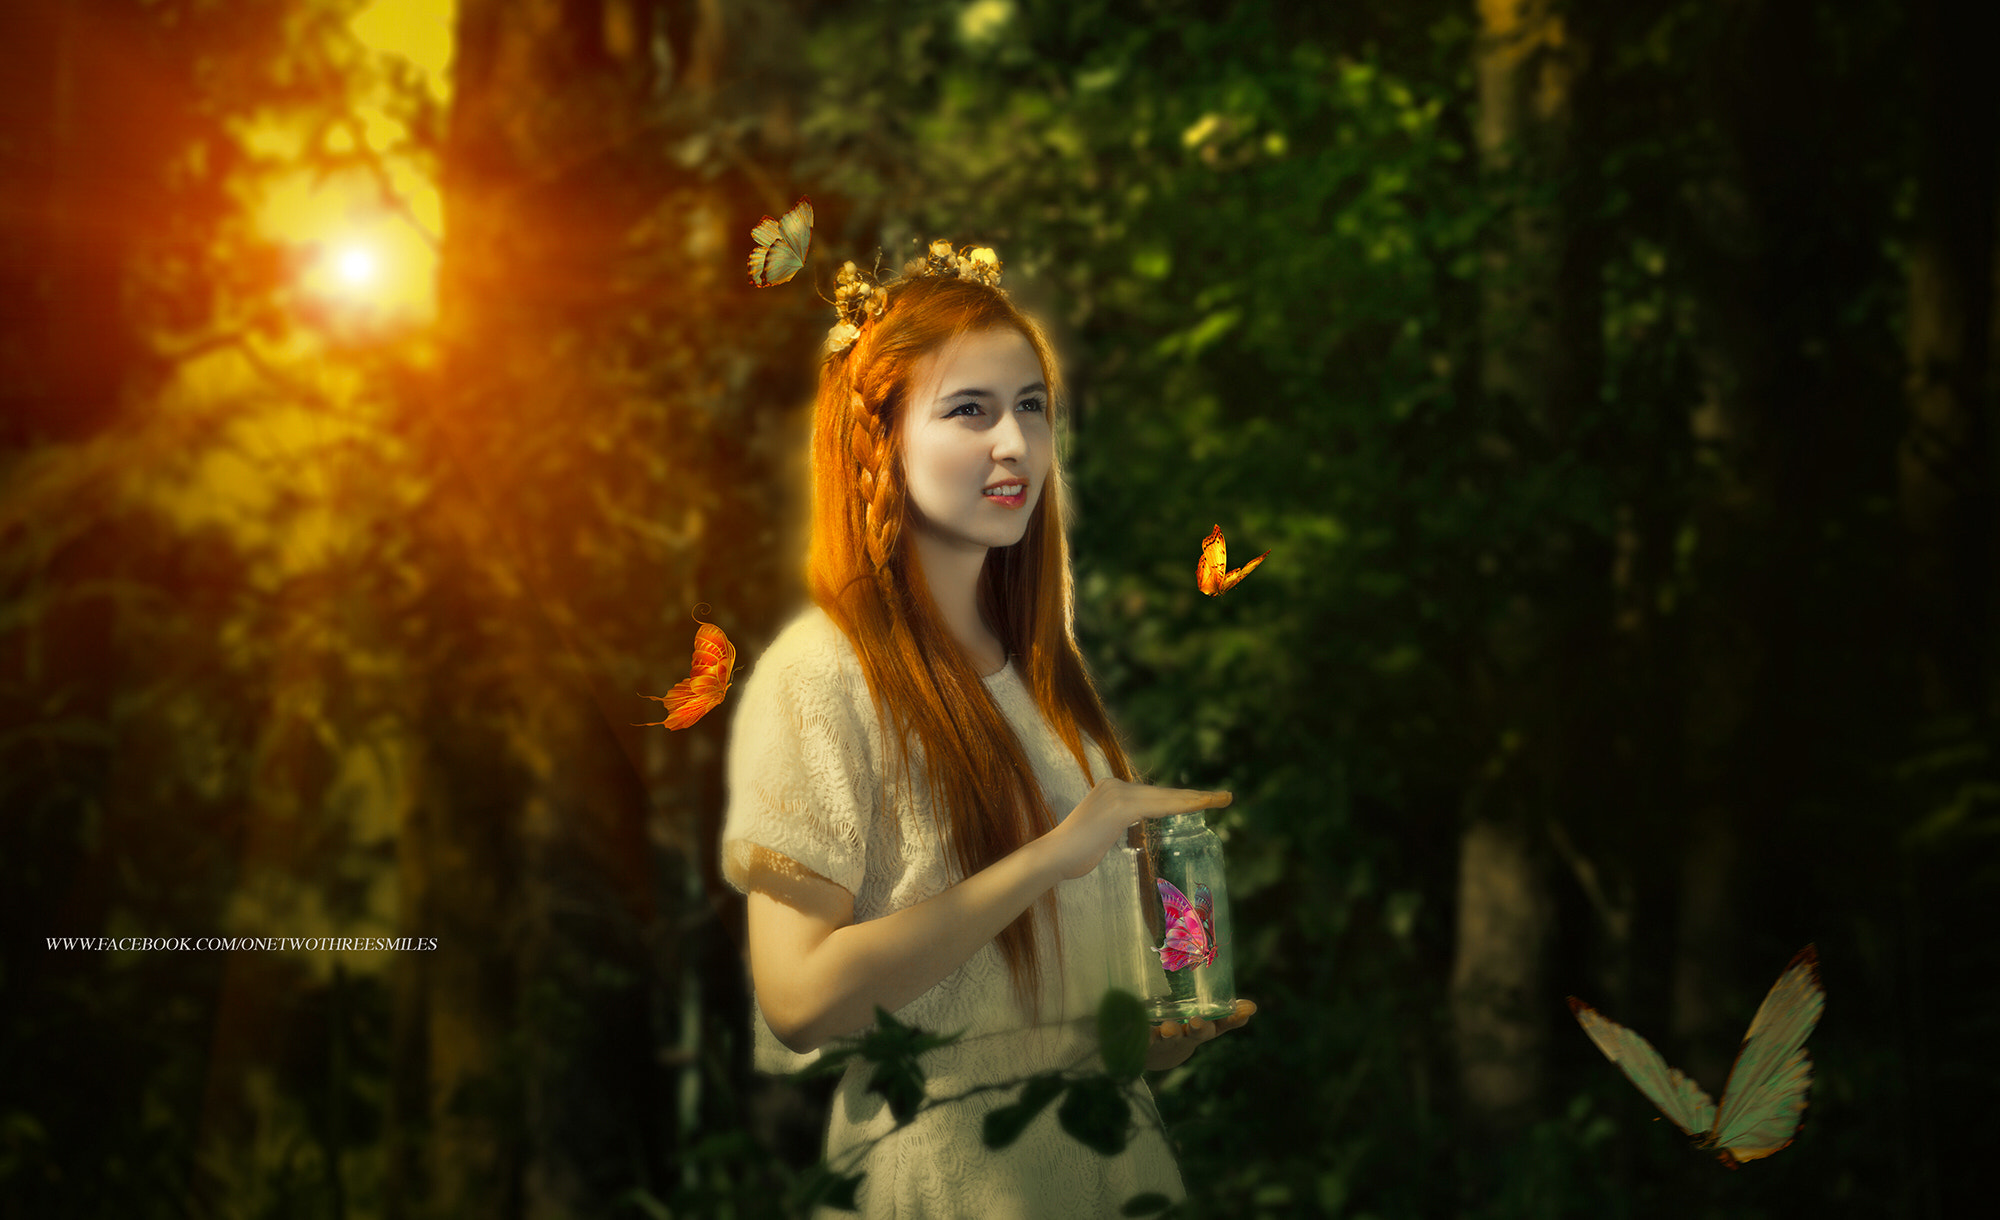 Photograph woman with the butterfly by ChaoPavit123Smiles on 500px